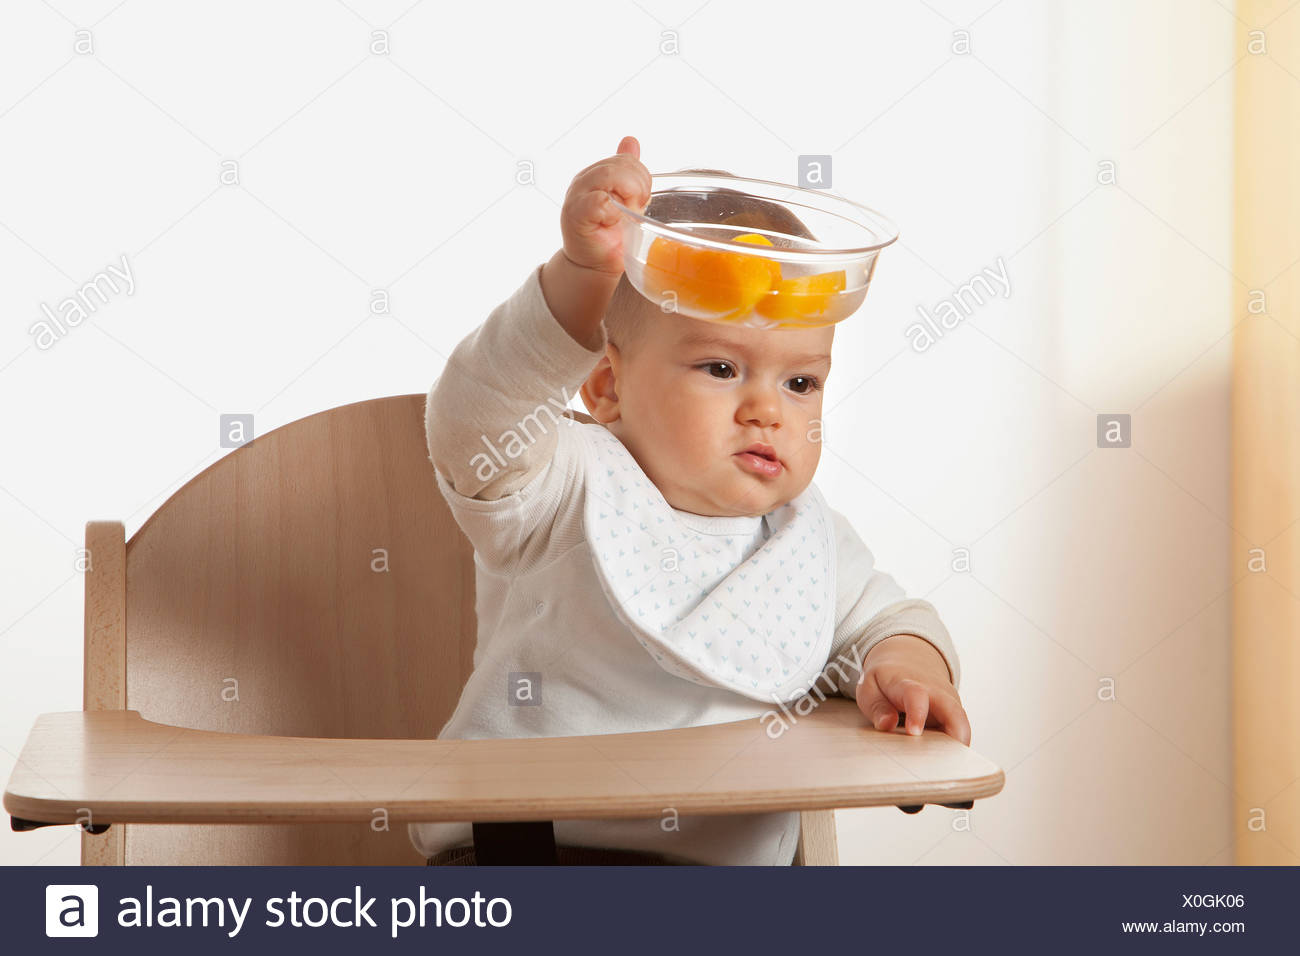 portrait of baby in high chair holding bowl with fruit Stock Photo